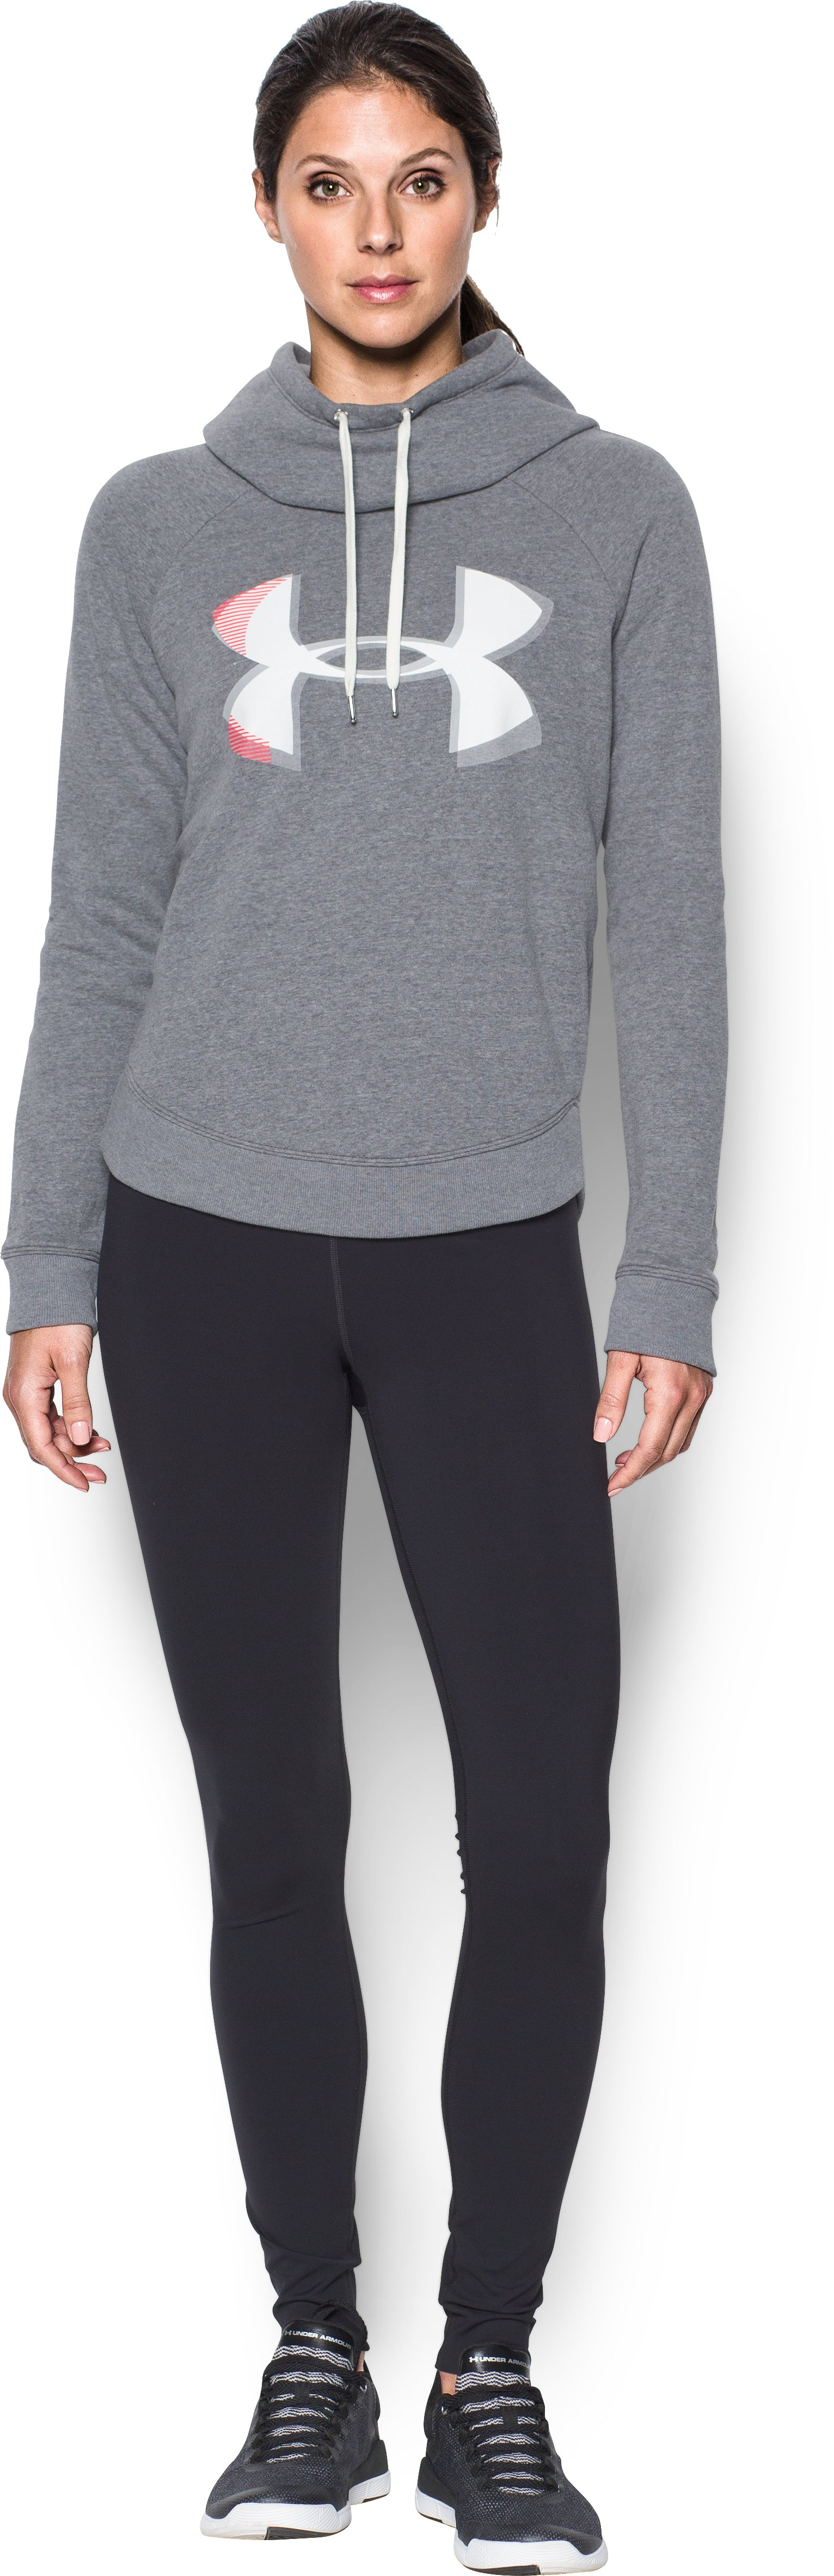 Women's UA Fashion Favorite Exploded Logo Pullover, Carbon Heather